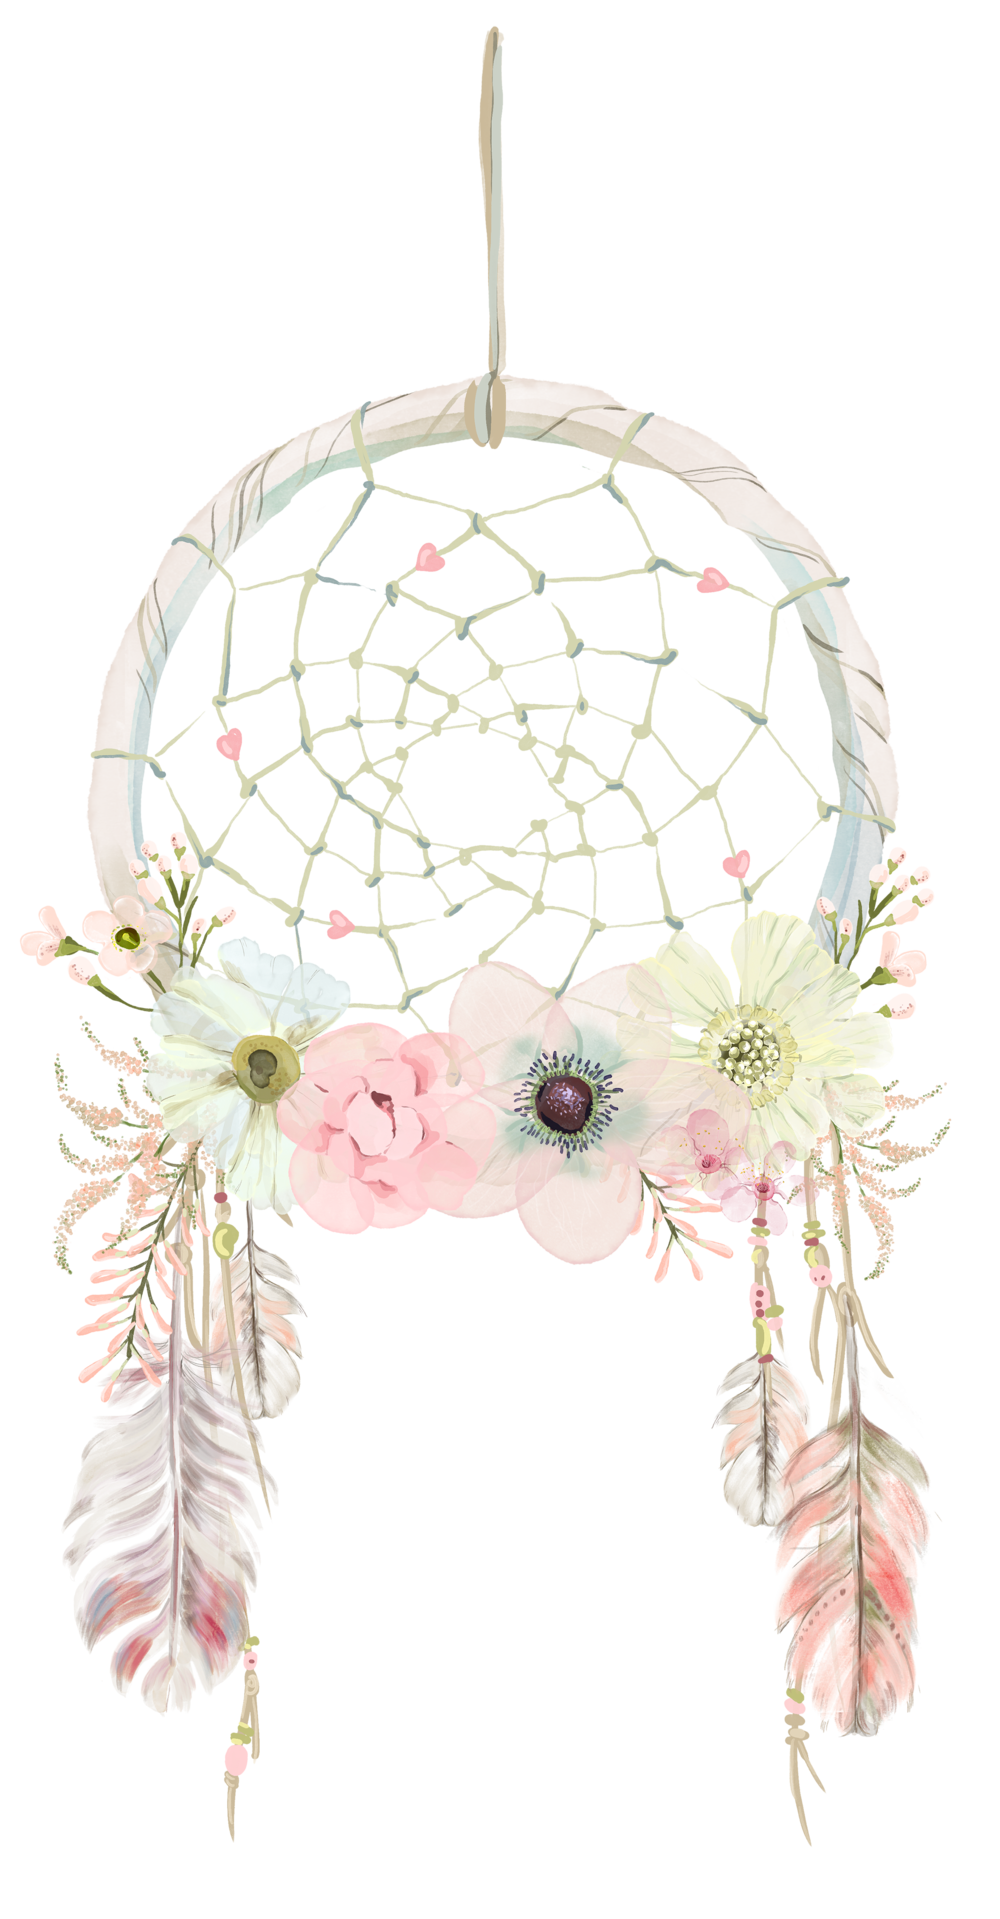 Dream catcher saferbrowser yahoo. Longhorn clipart tribal